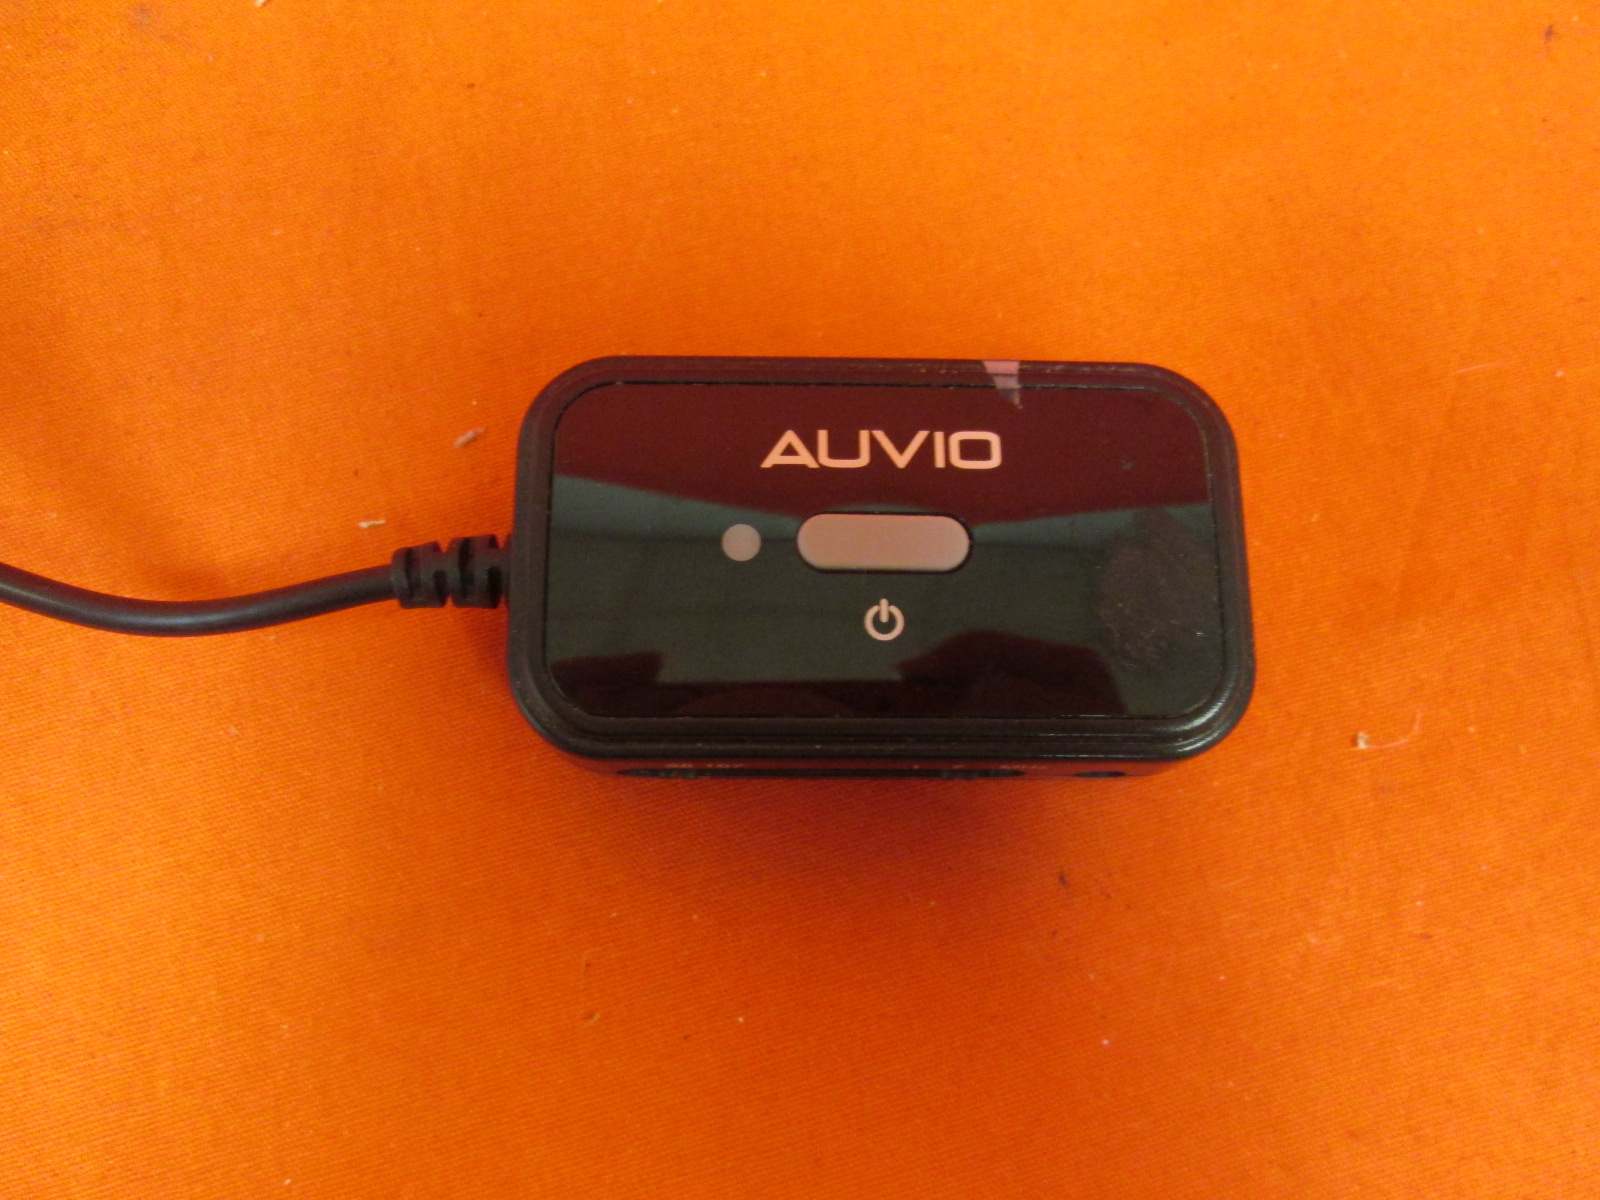 Auvio Wireless FM Transmitter Missing Car Power Adapter